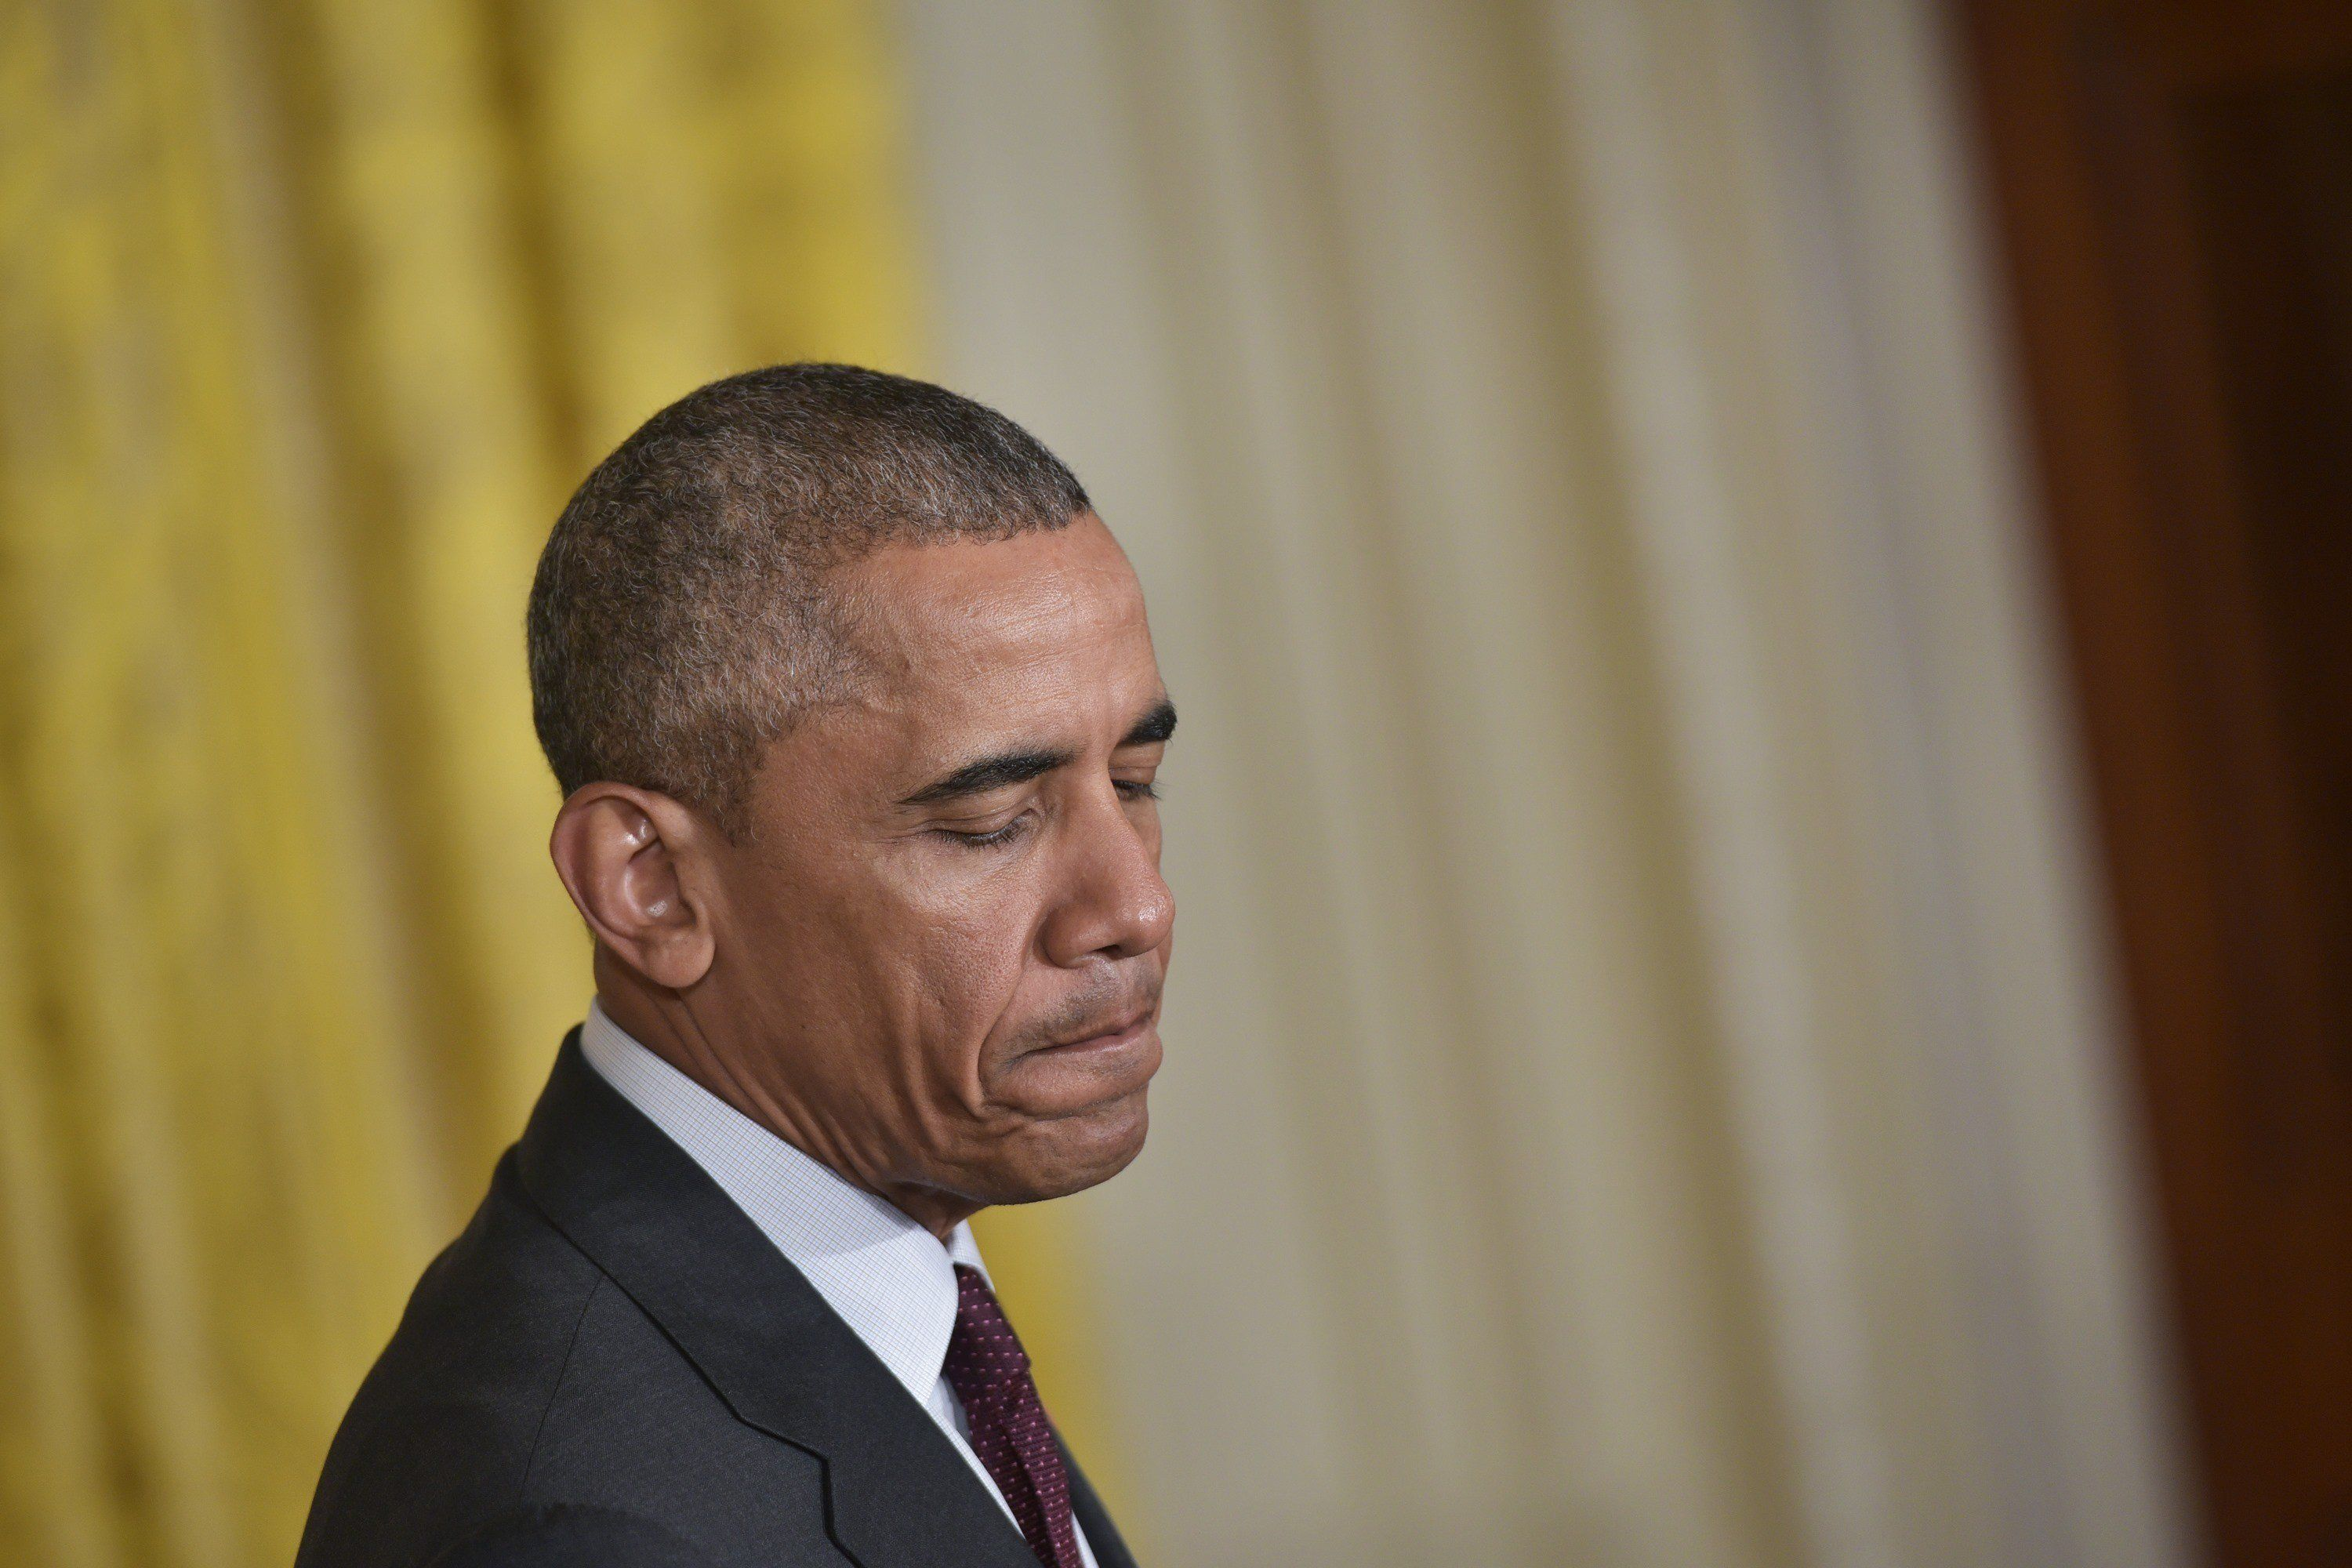 <p>In pursuit of the Trans-Pacific Partnership, the Obama administration upgraded Malaysia's ranking on the list of the world's worst human trafficking offenders.</p>